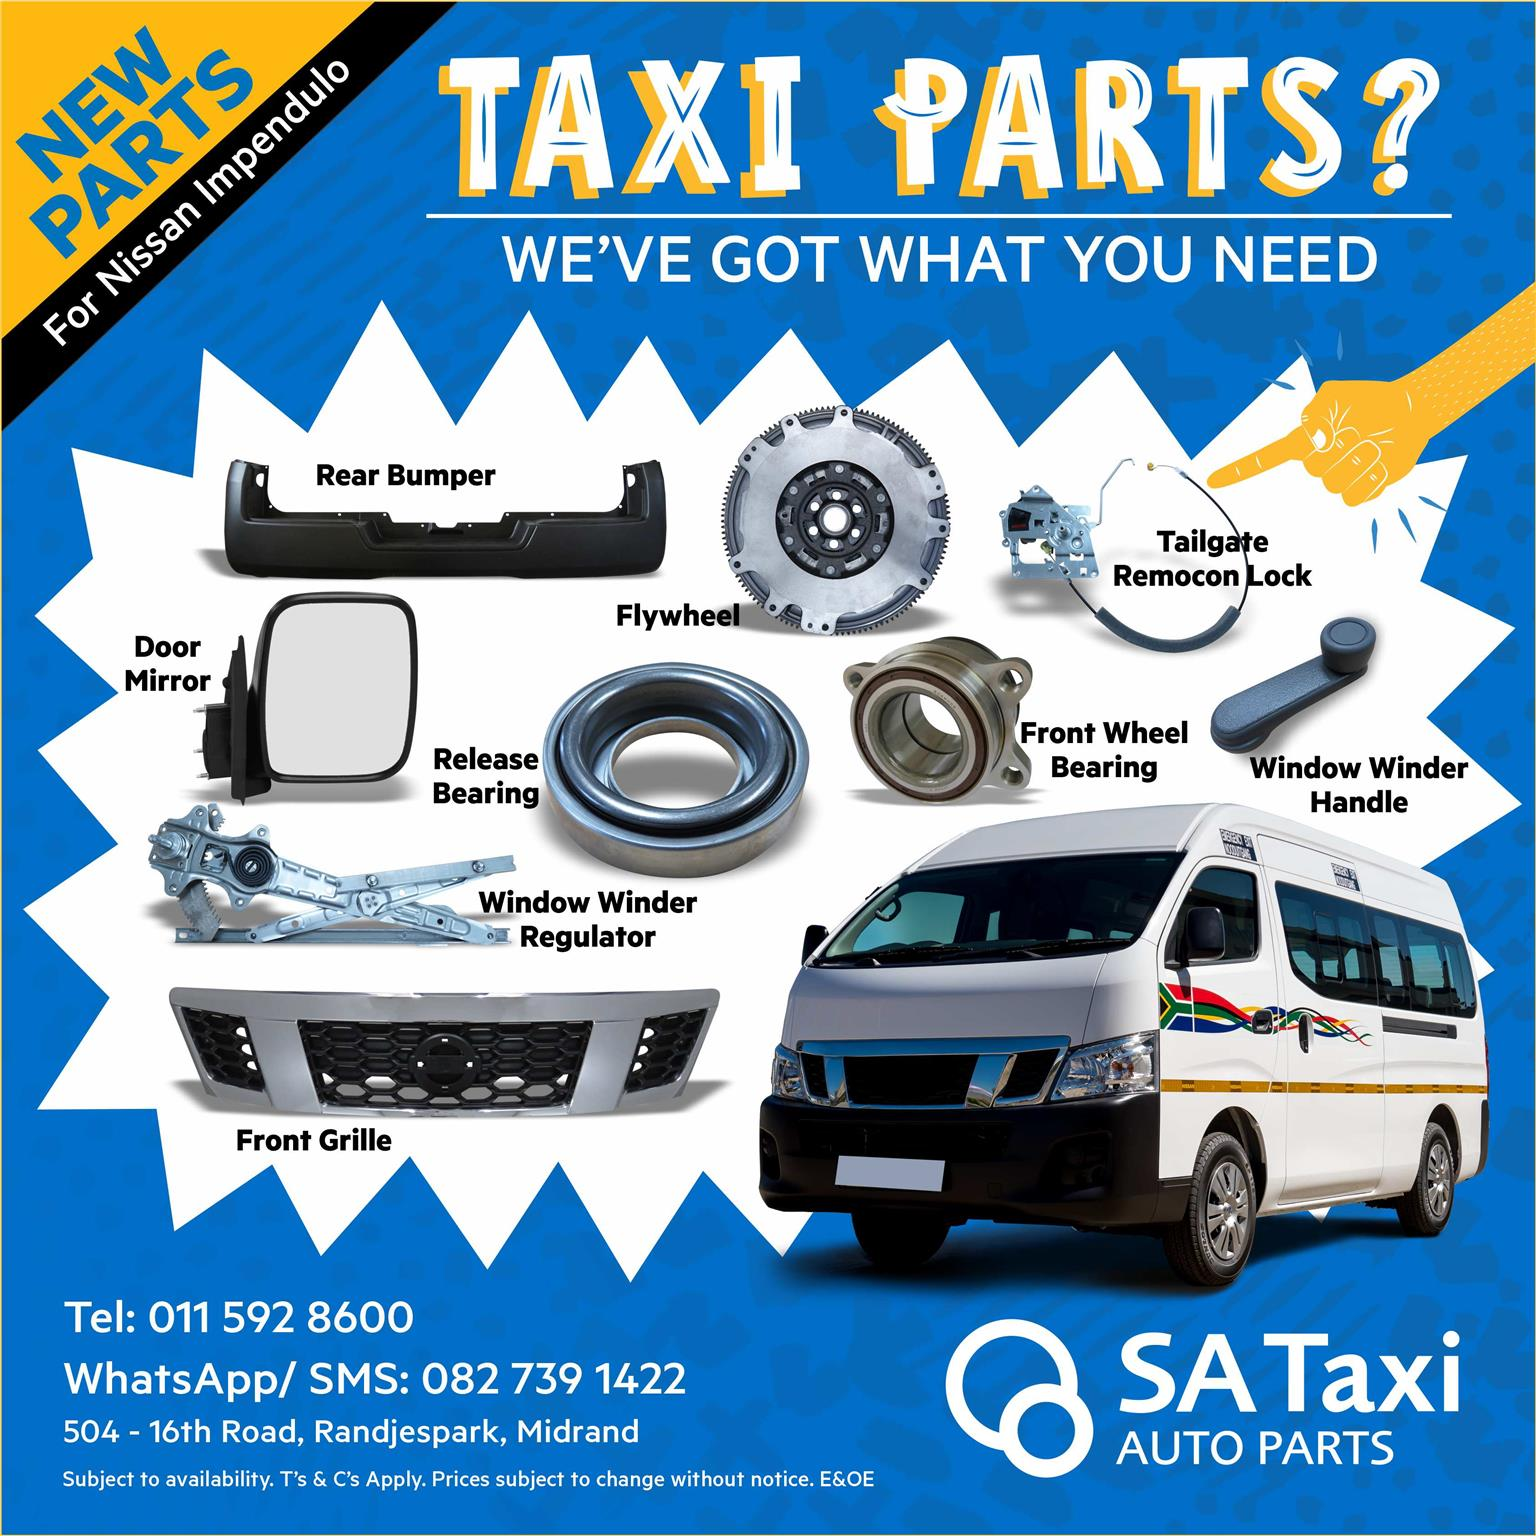 NEW Upper Control Arm Suitable for Nissan NV350 Impendulo - SA Taxi Auto Parts quality spares